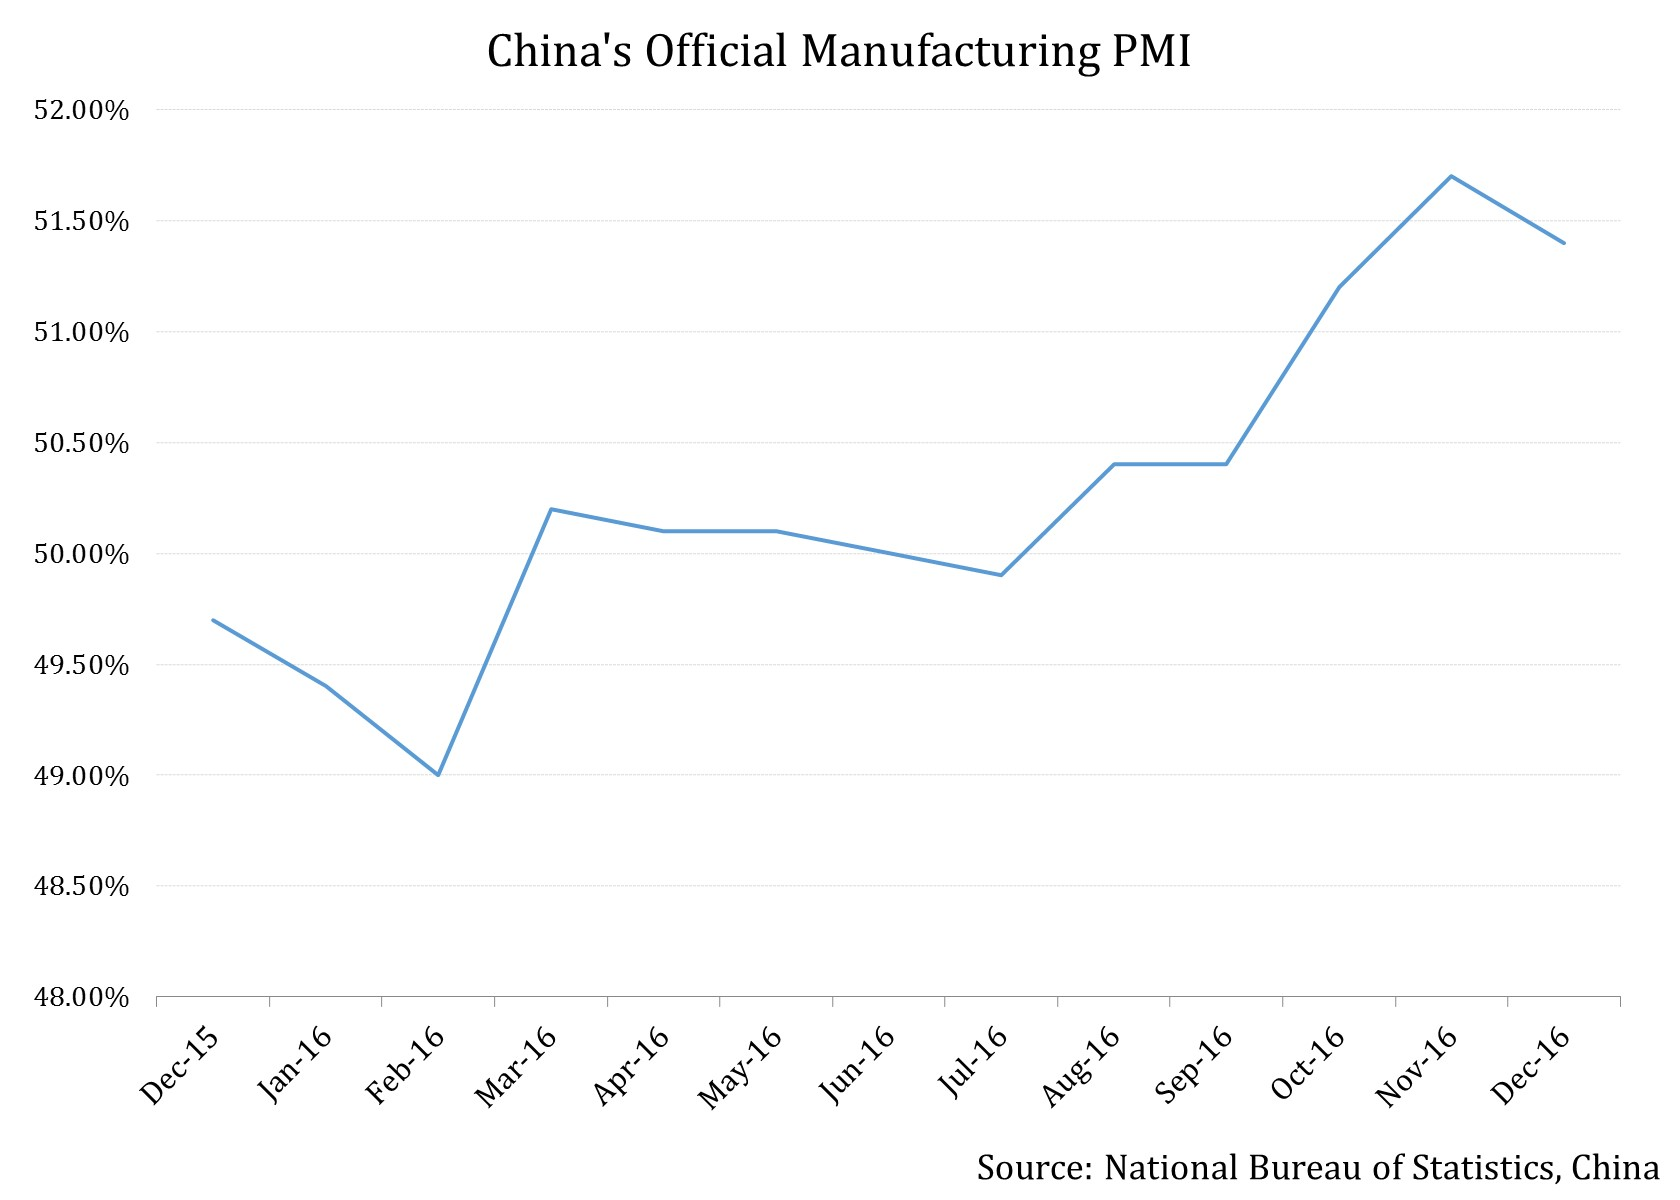 Global manufacturing PMI hits 34-month high in December